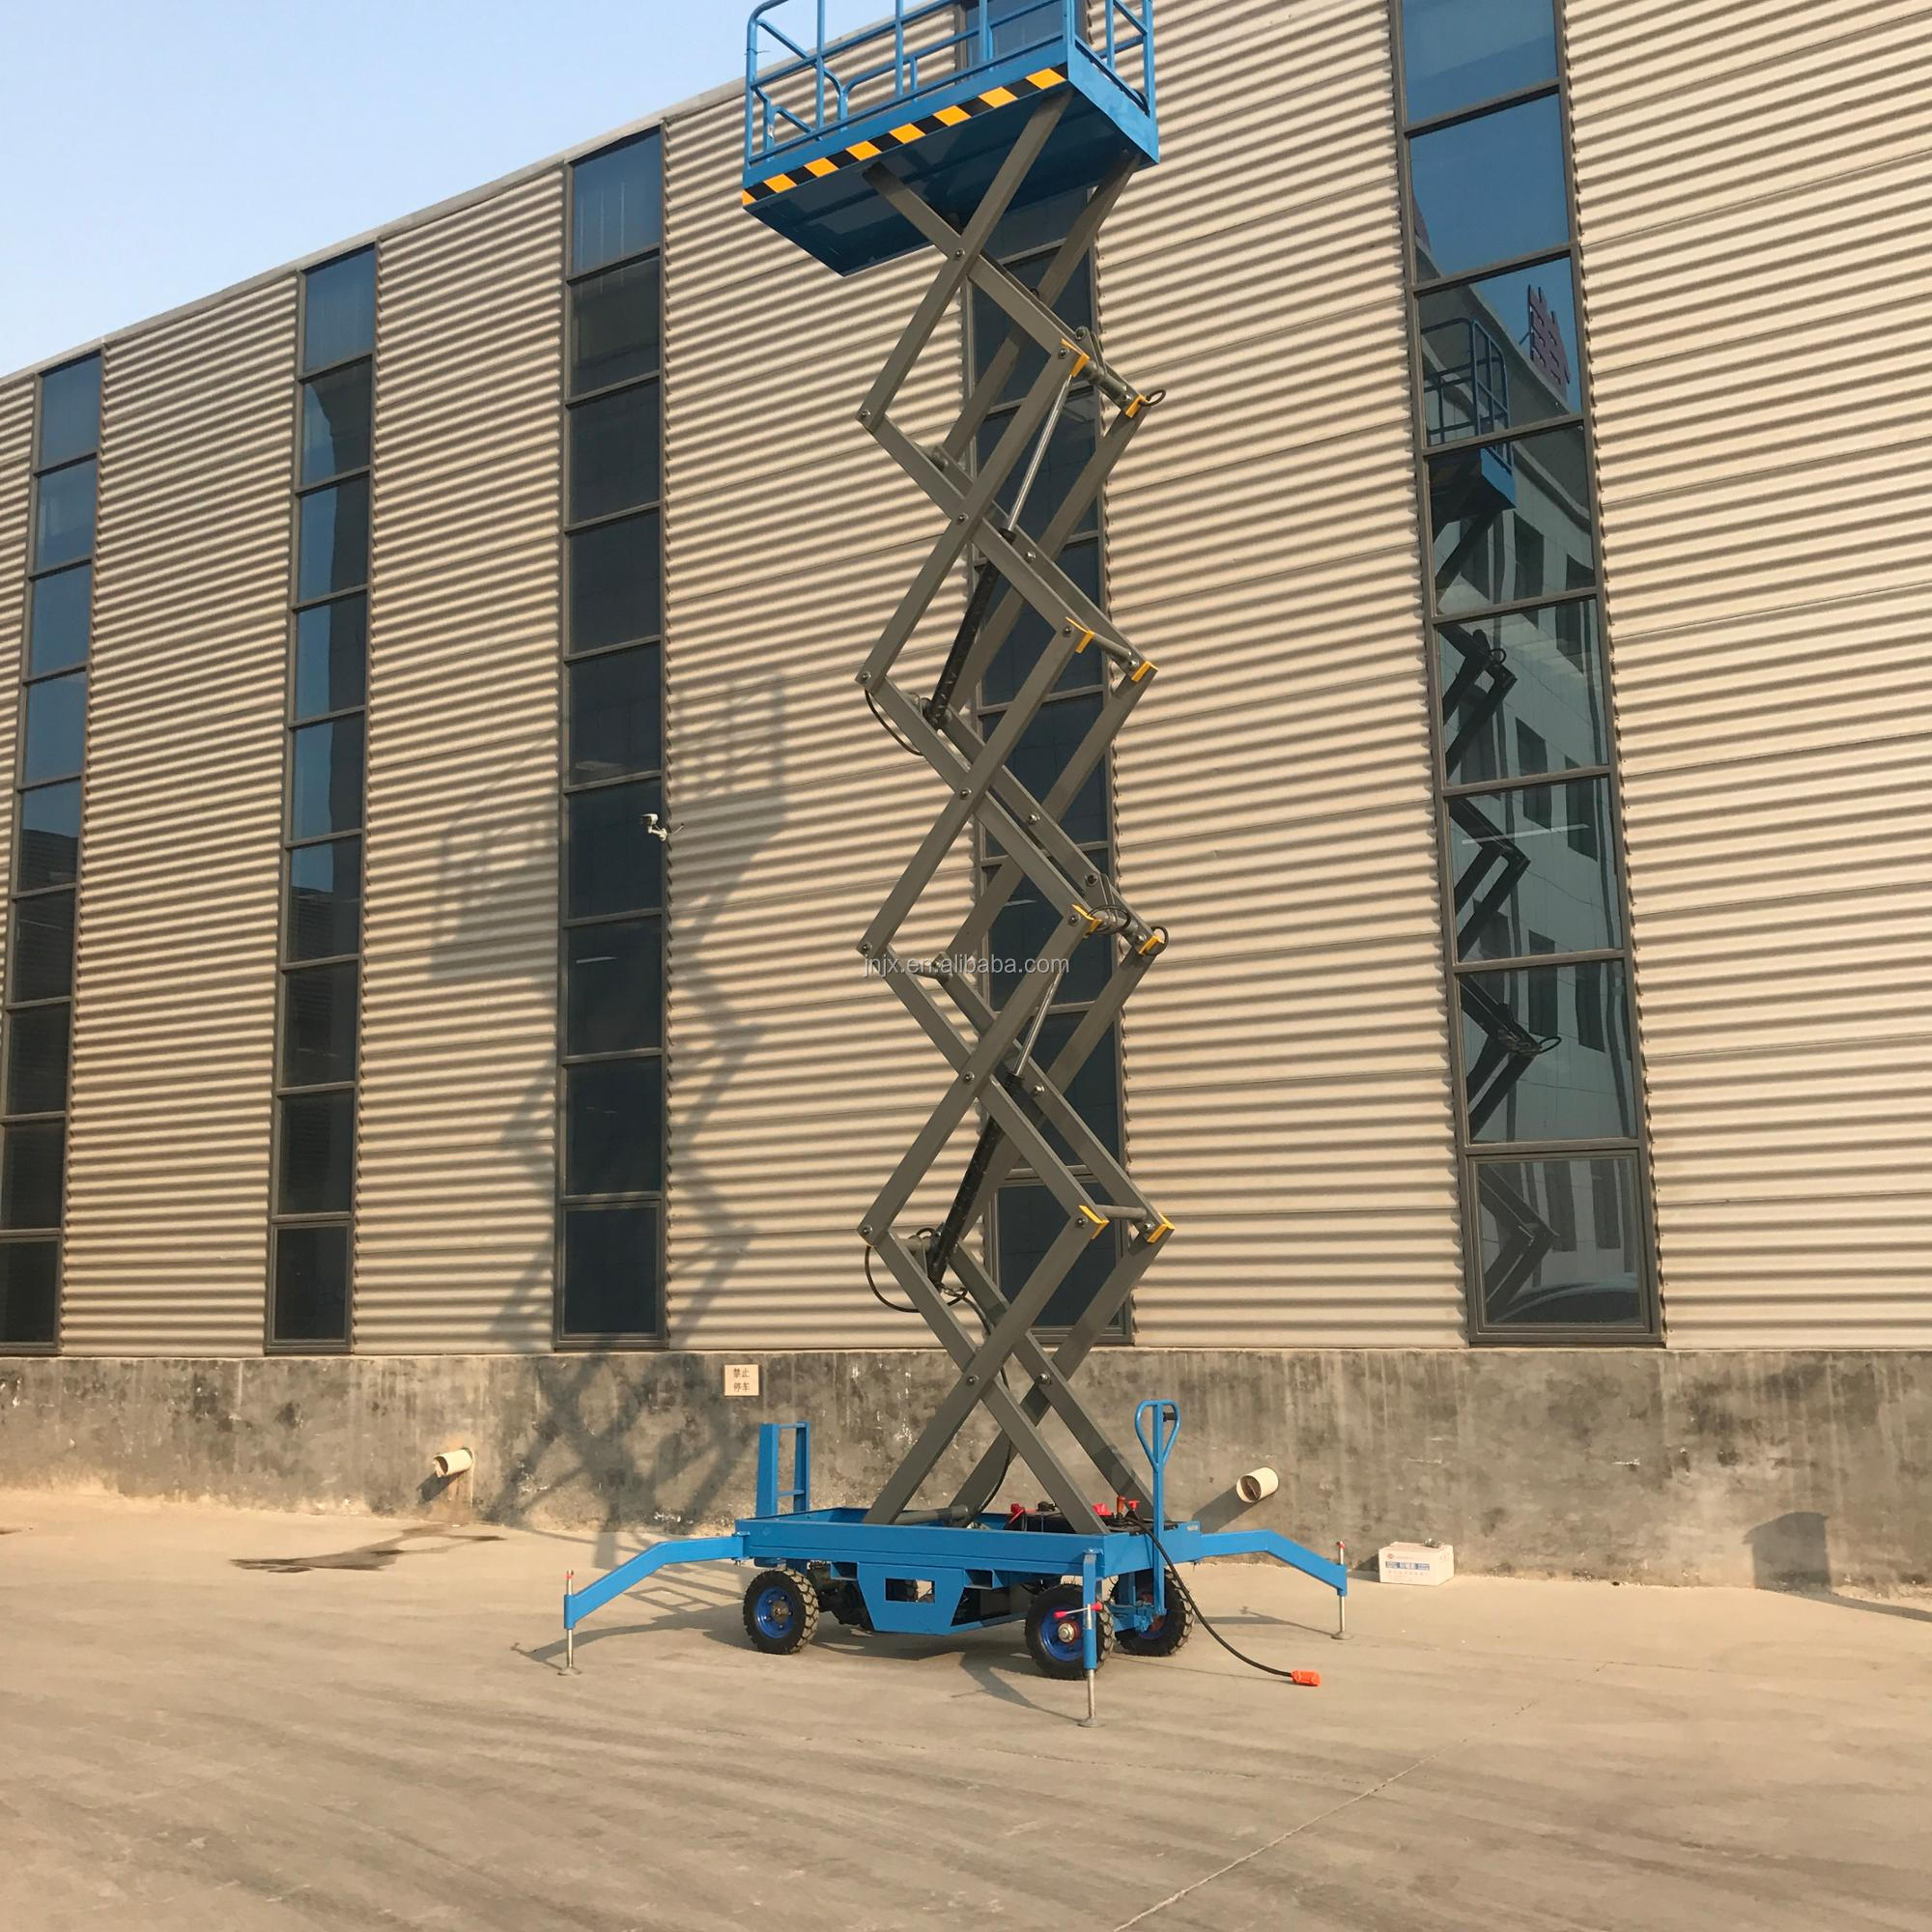 Grove Scissor Lift Manual, Grove Scissor Lift Manual Suppliers and  Manufacturers at Alibaba.com